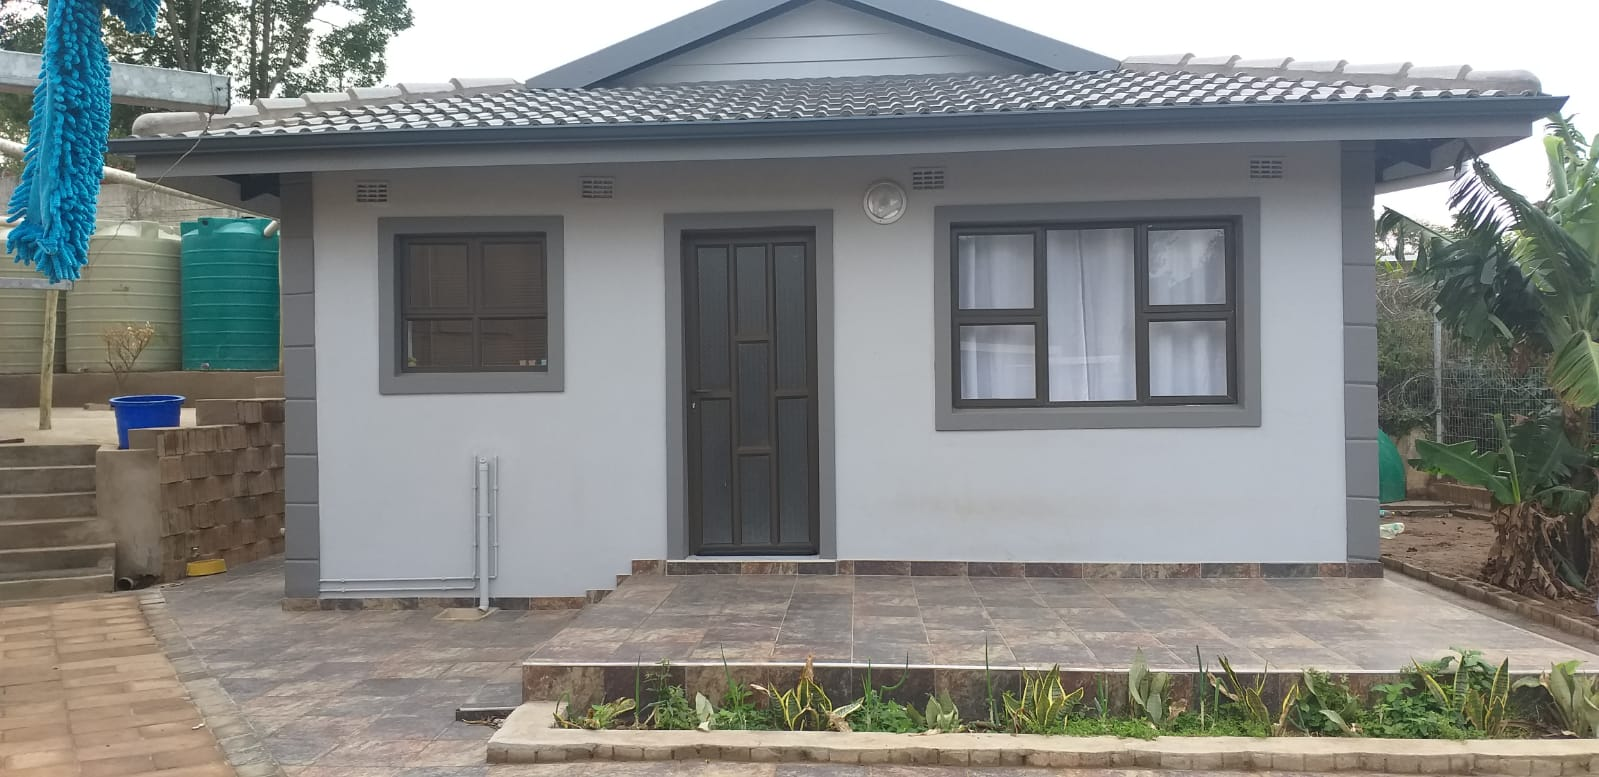 FREE STANDING OUTBUILDING TO RENT – WESTVILLE